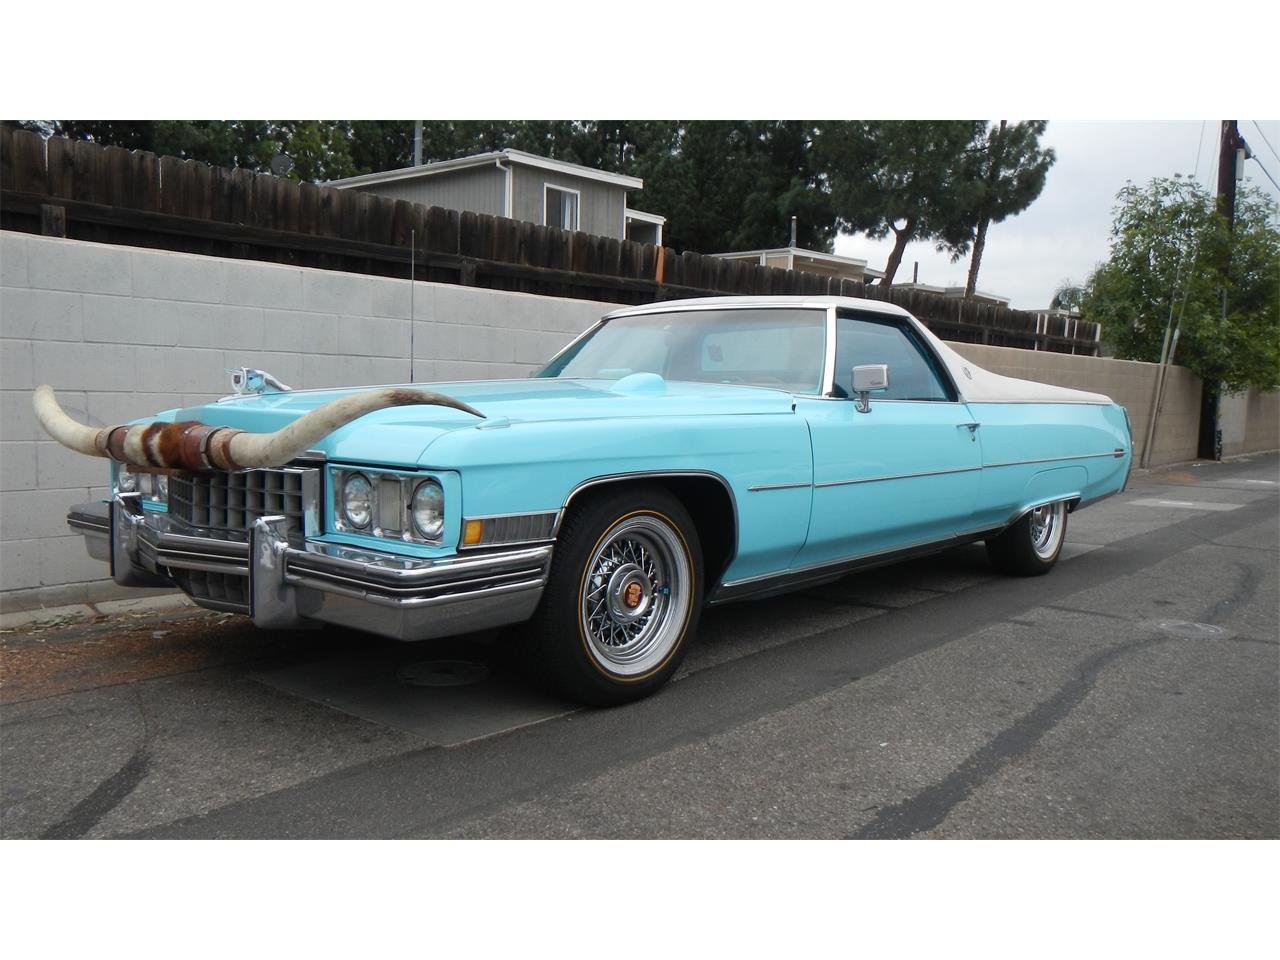 1973 Cadillac Eldorado for sale in Woodland Hills, CA – photo 3